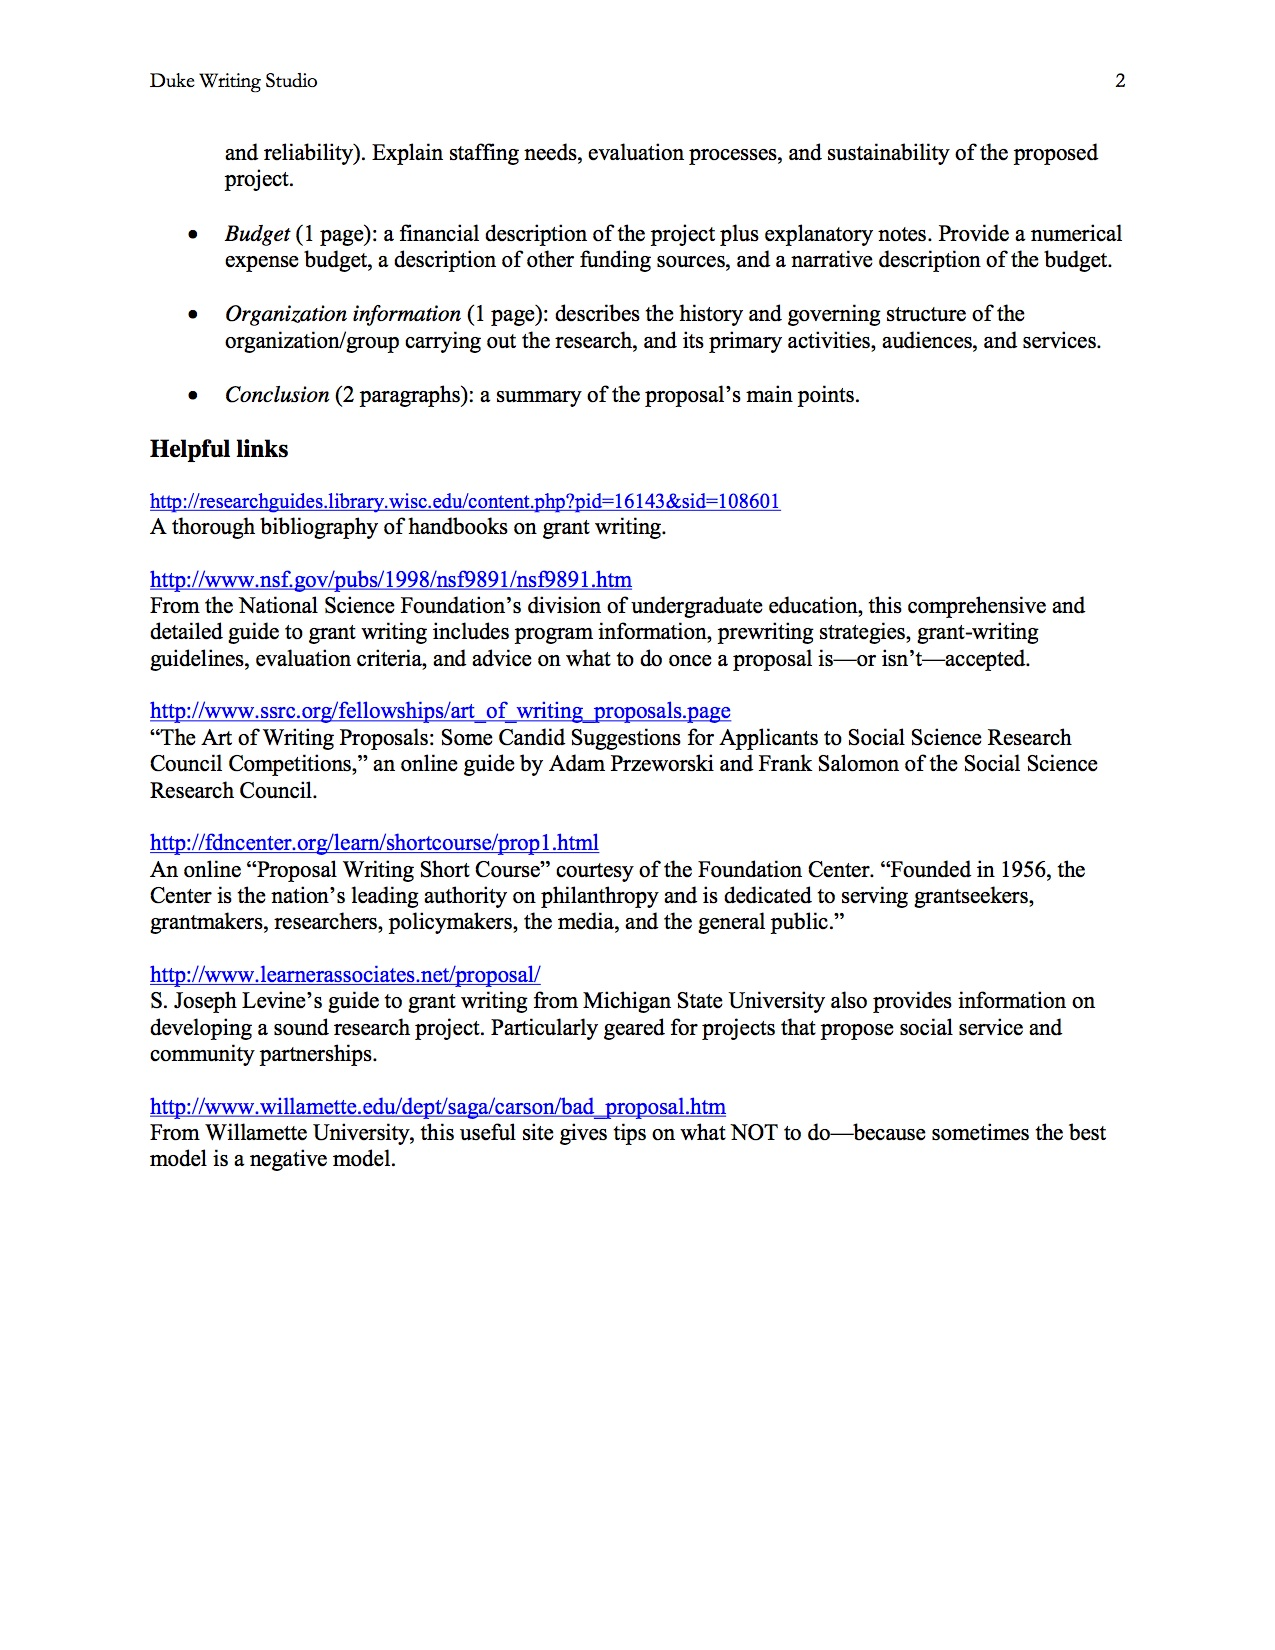 a. Components of a Humanities & social science Research Proposal